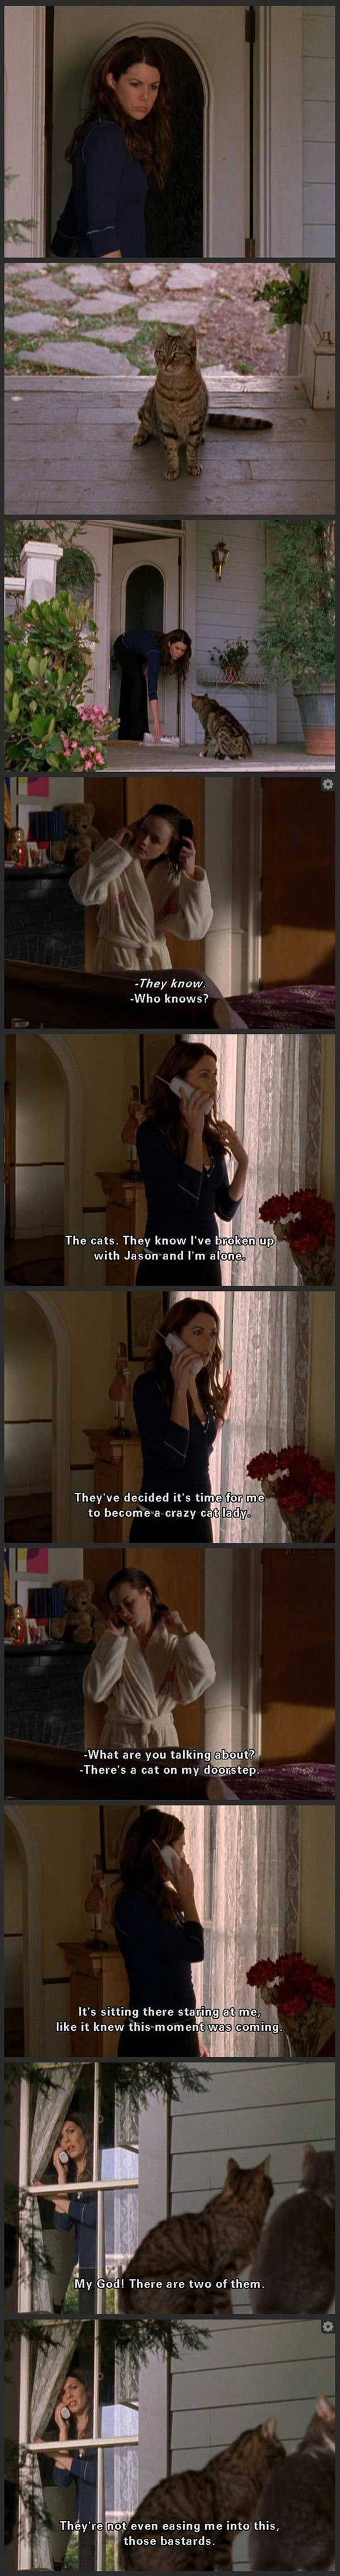 funny-Gilmore-Girls-crazy-cat-lady